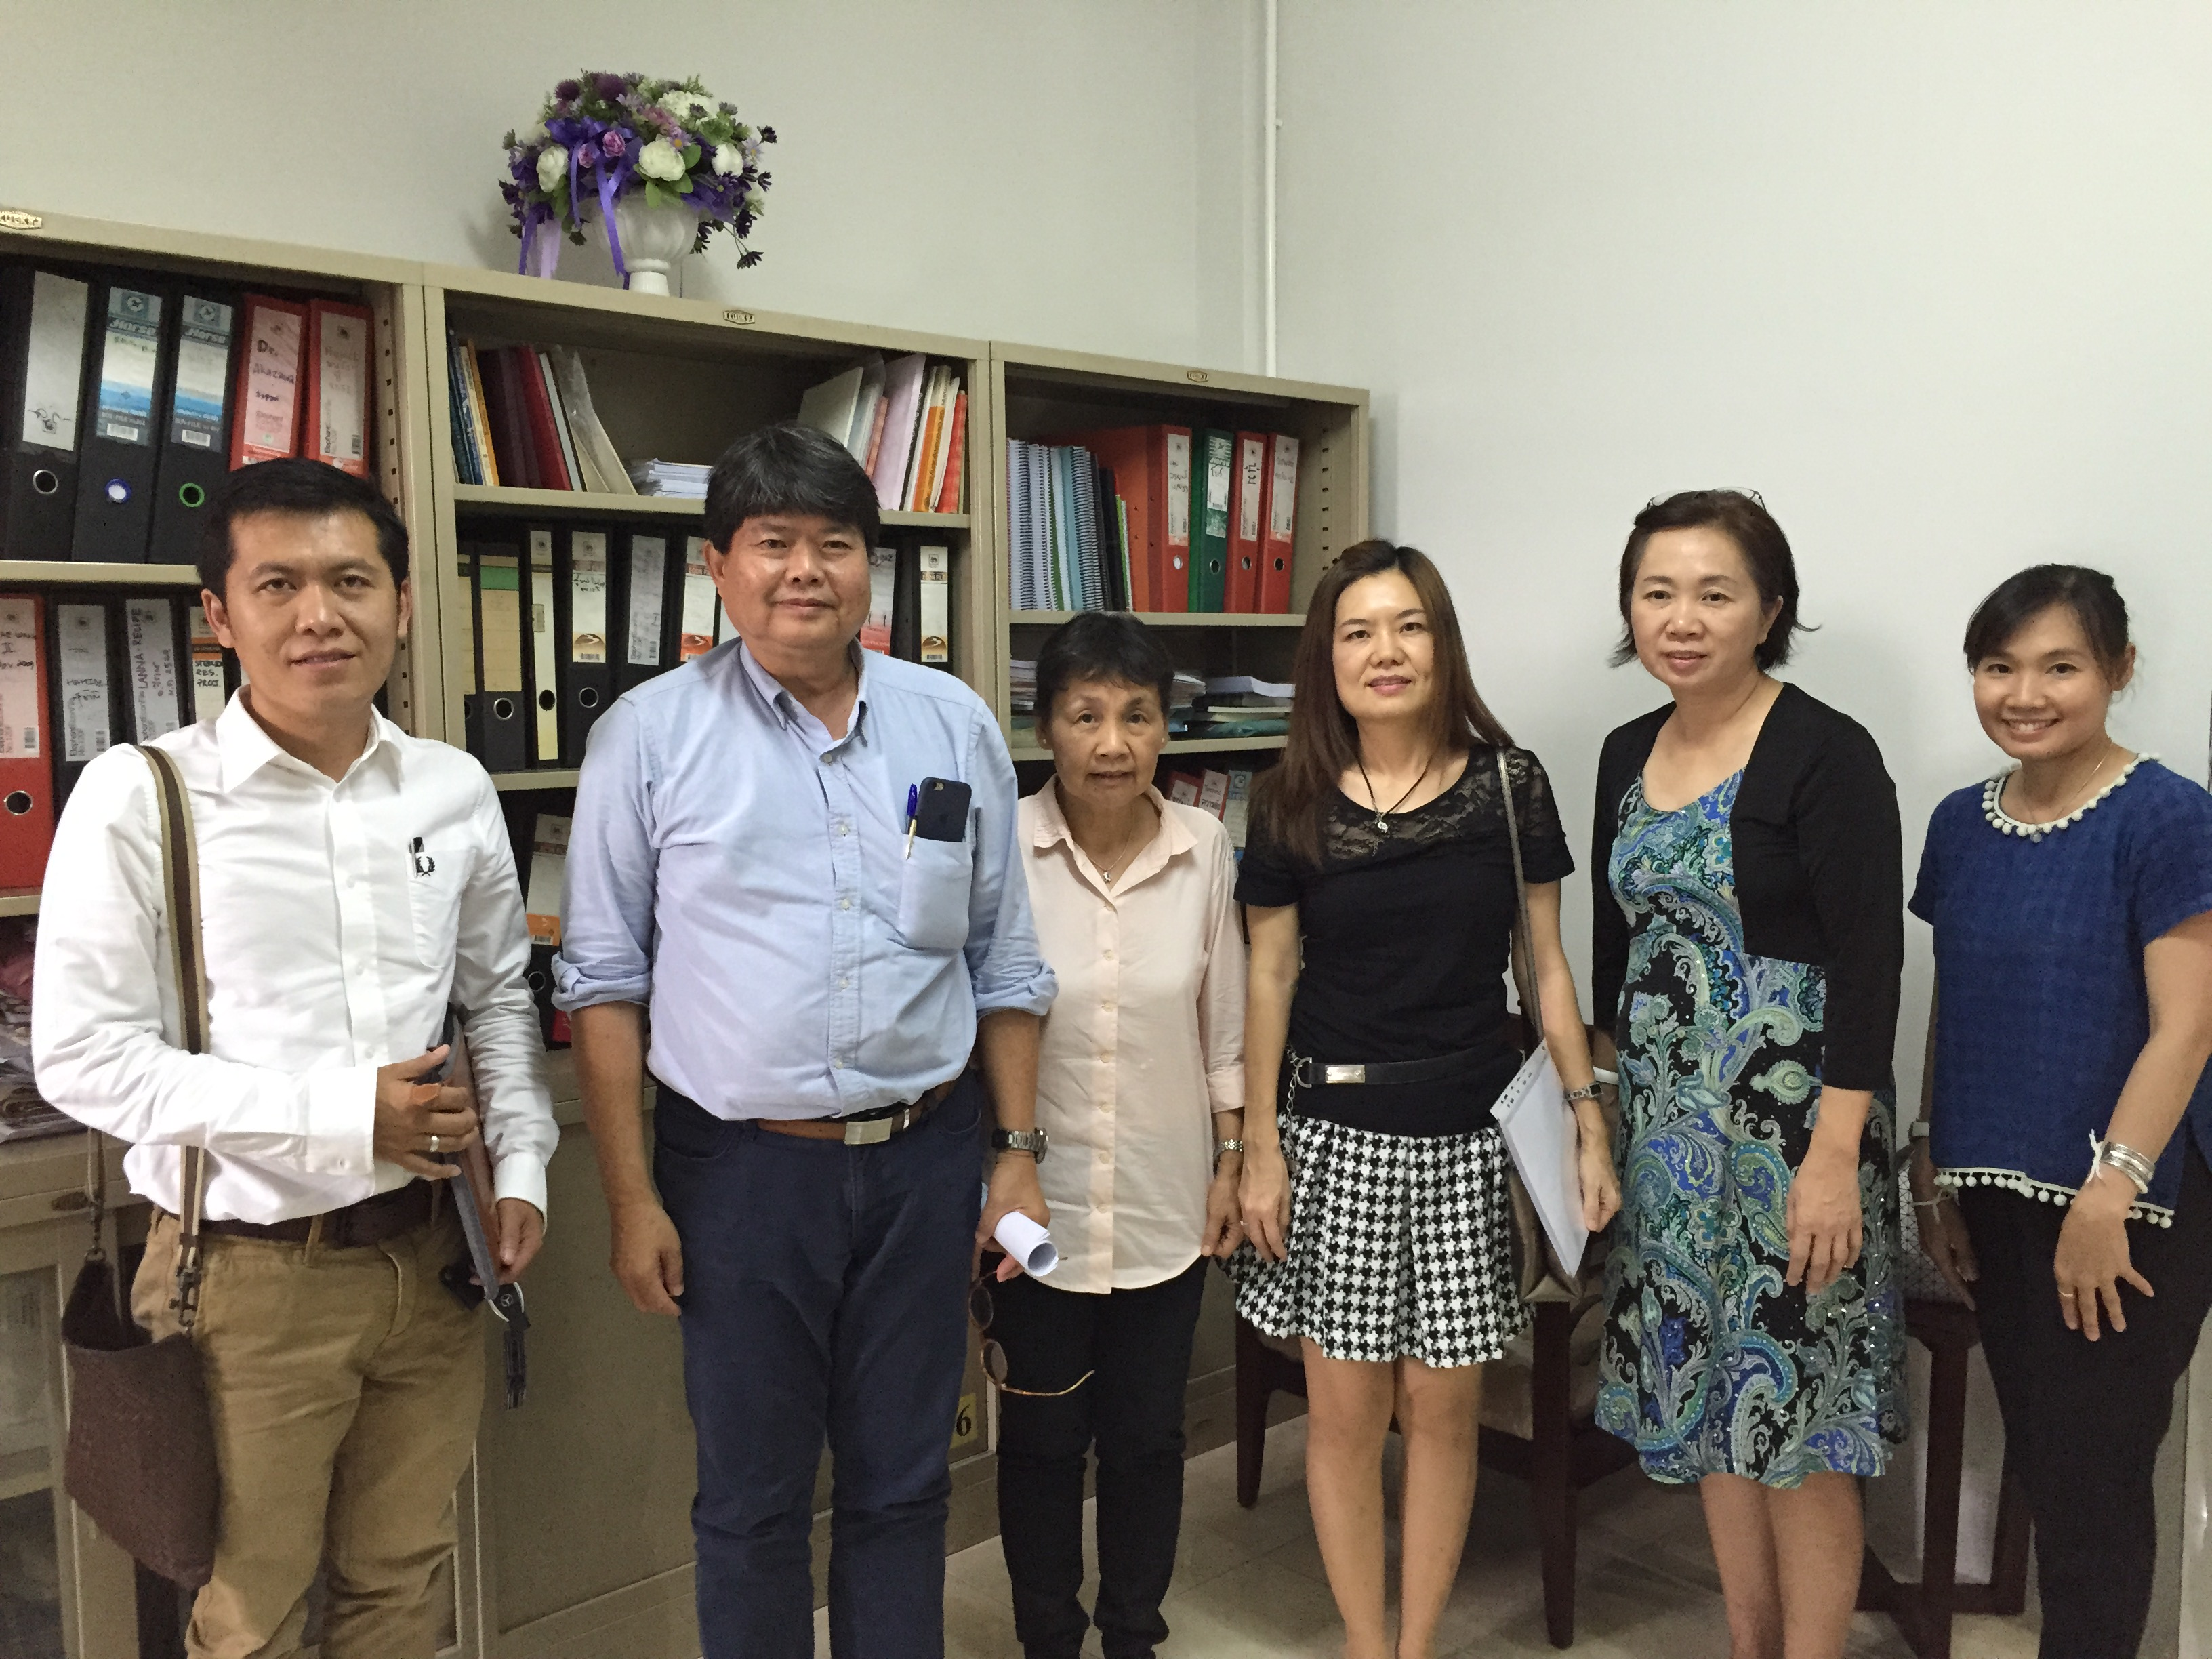 Mrs. Naowarat Sananpanitchkul (The Executive Officer, 003 Beauty Center Co., Ltd.), Dr. Thamonphorn Chaisirirat (Thamonphorn Medical Clinic) and Mr. Thanapol Fusricharoen (Northern Art Co., Ltd.) have visited Manose Health and Beauty Research Center